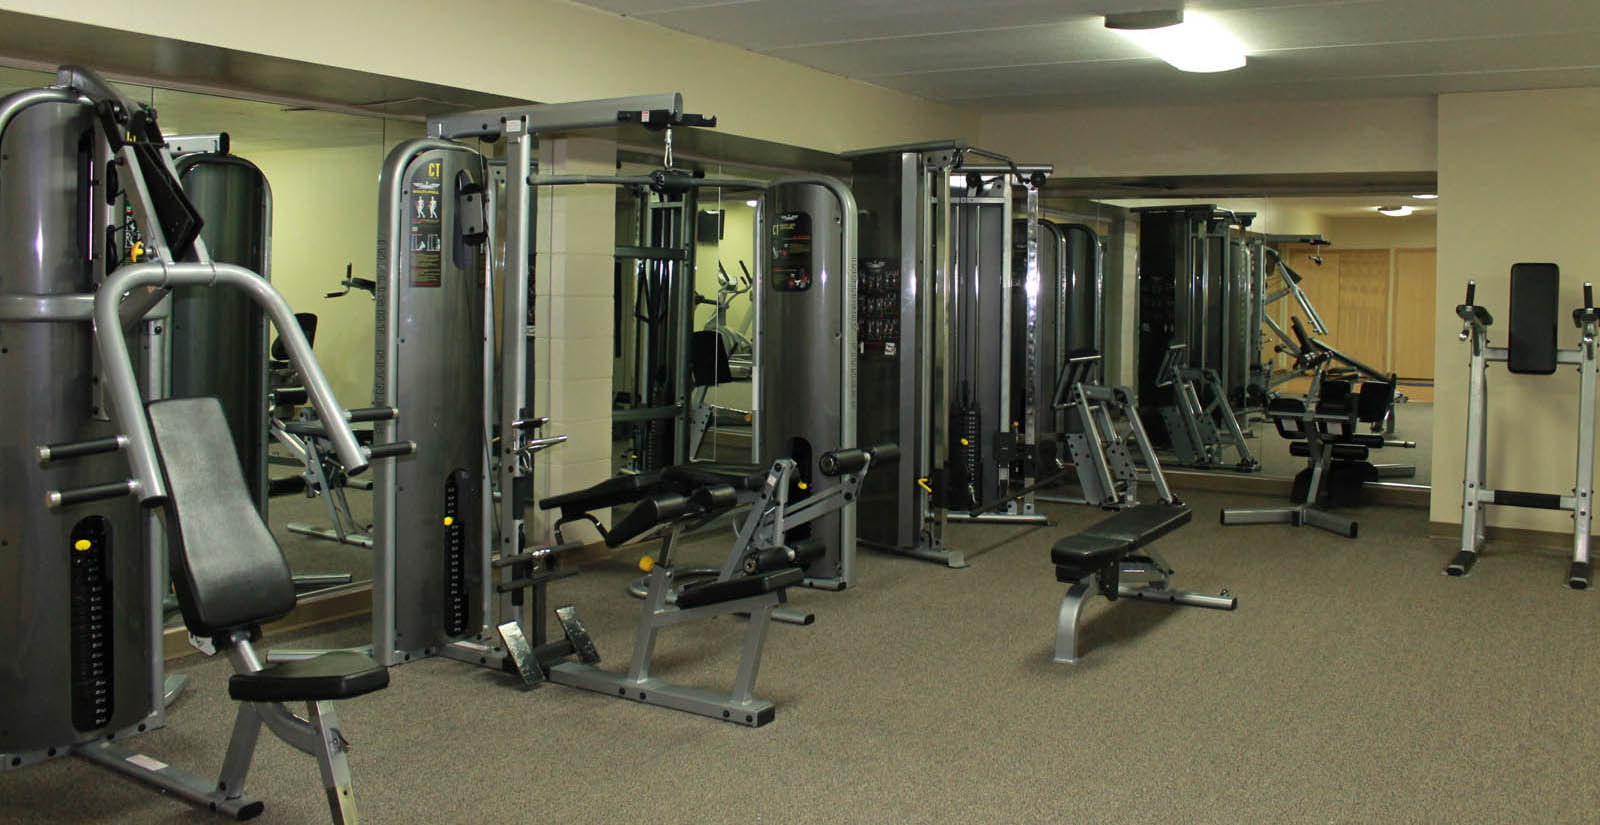 Fitness center at apartments in Greenfield